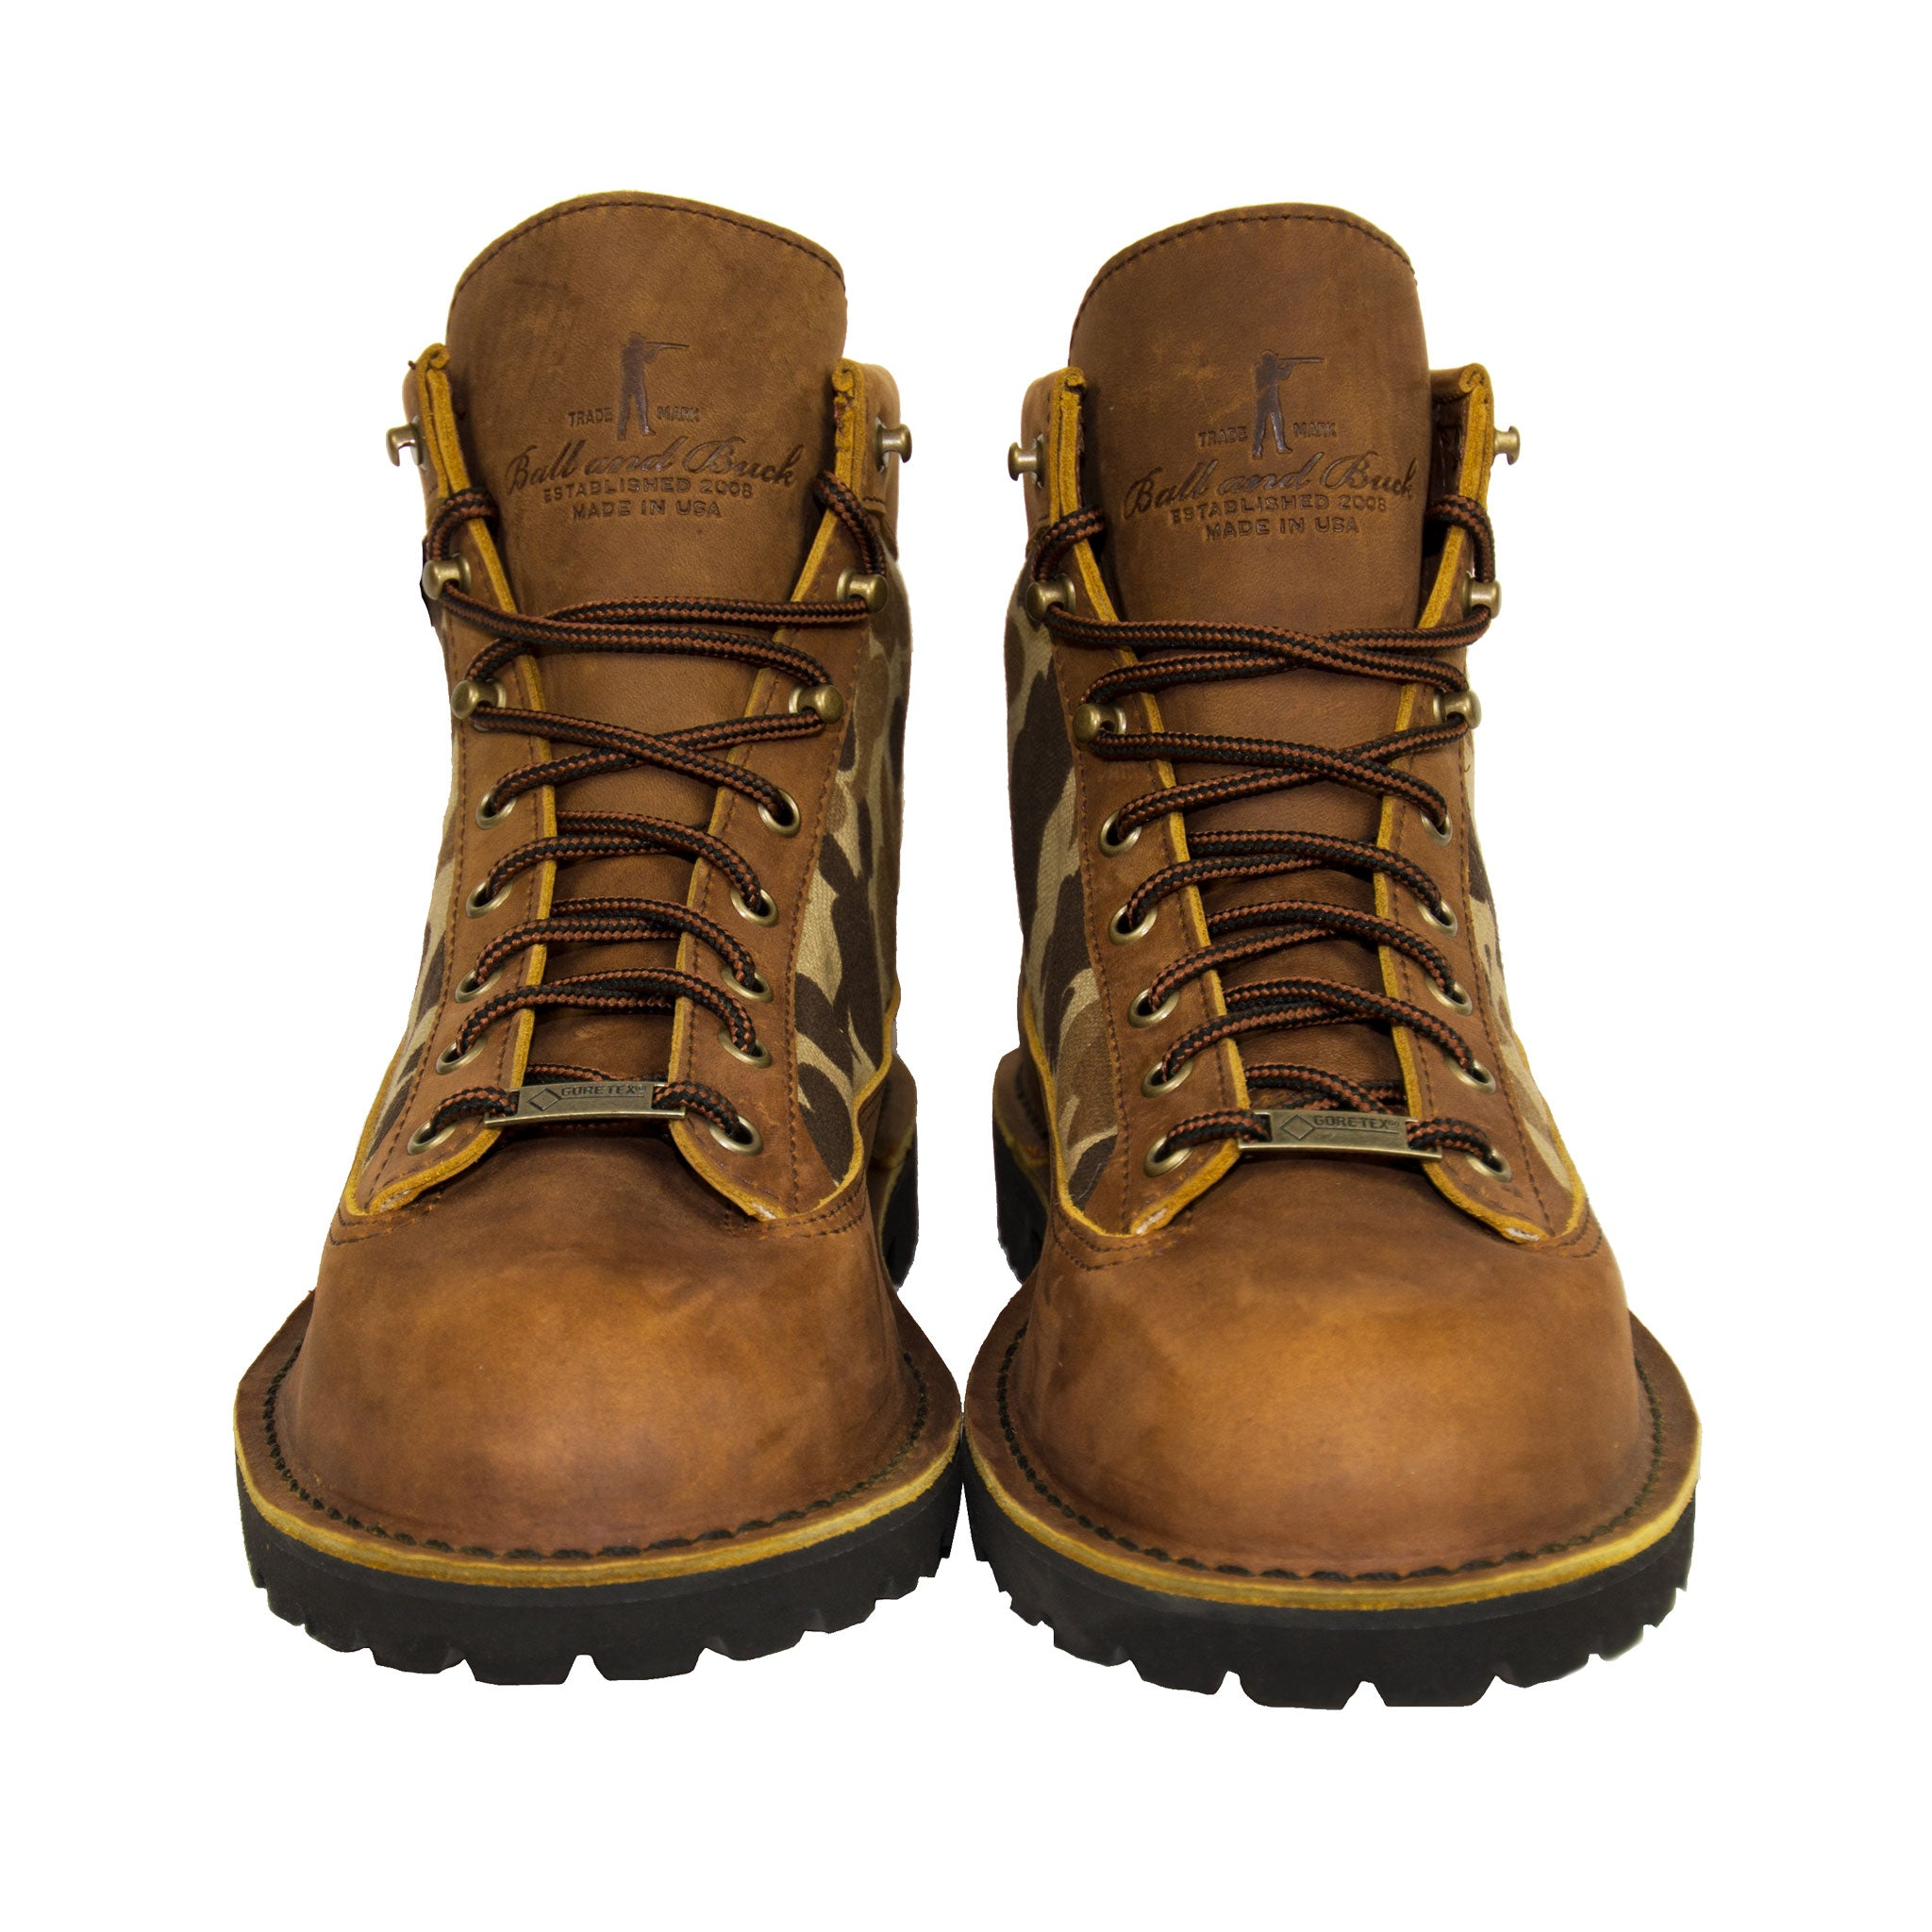 Danner Boots For Sale Tsaa Heel